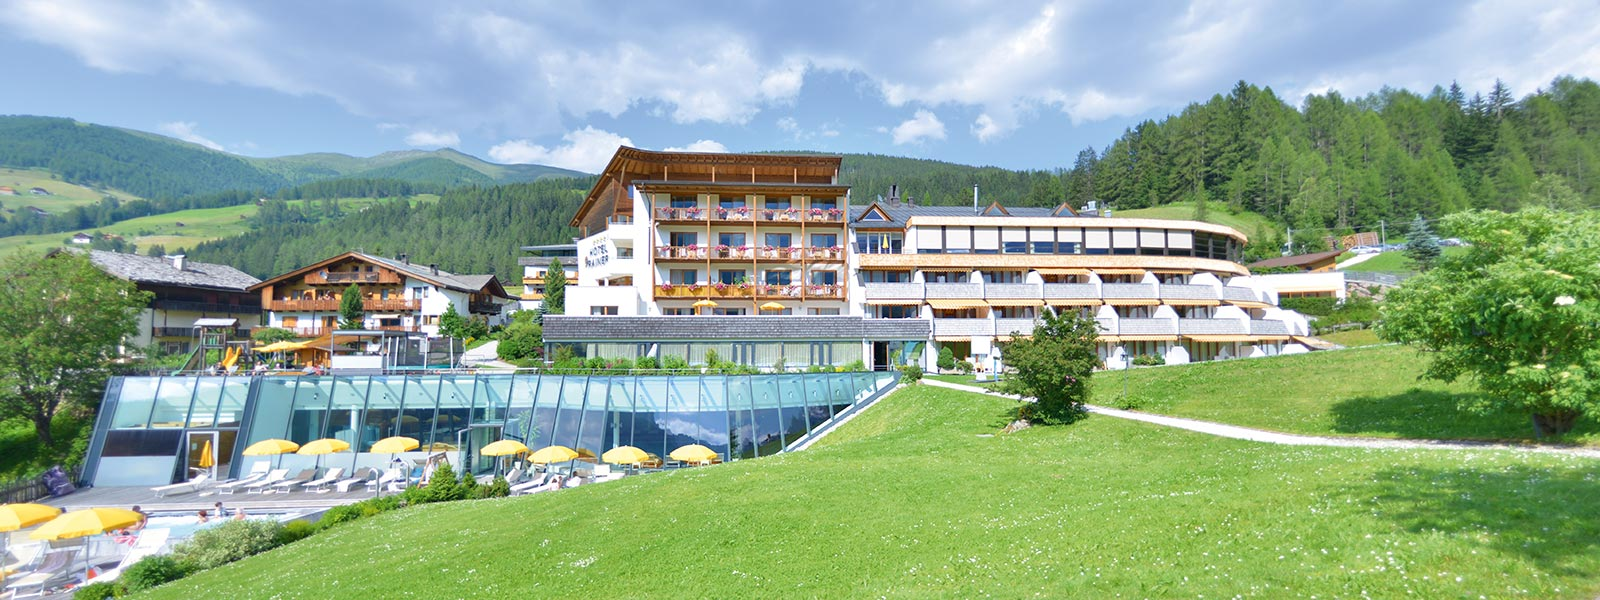 Family Resort Rainer - Hotel Rainer****s